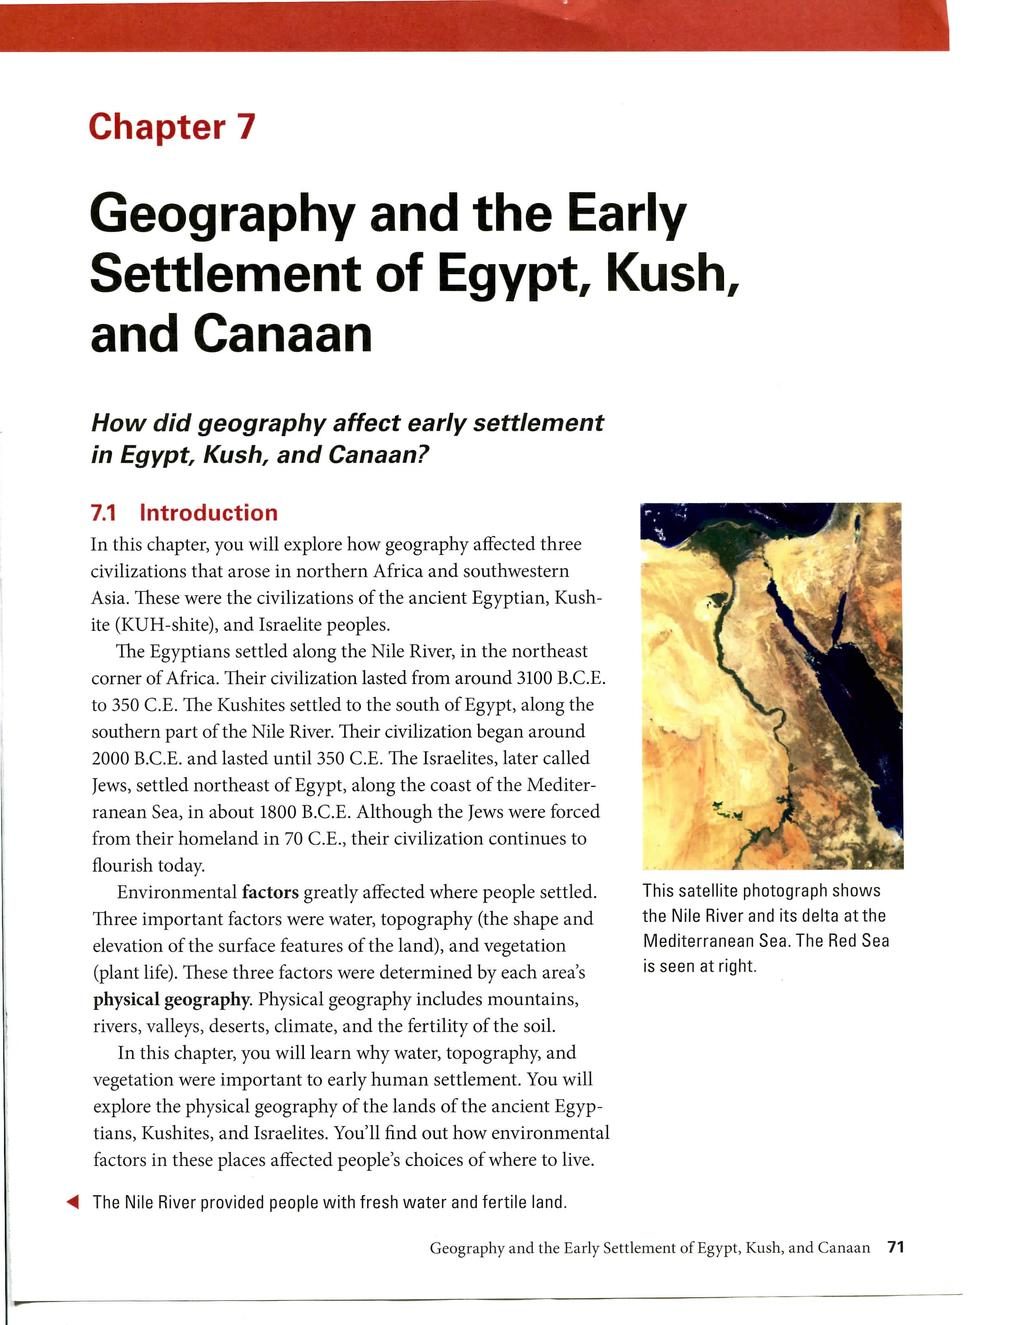 Chapter 7 Geography and the Early Settlement of Egypt, Kush, and Canaan How did geography affect early in Egypt Kush, and Canaan? settlement 7.